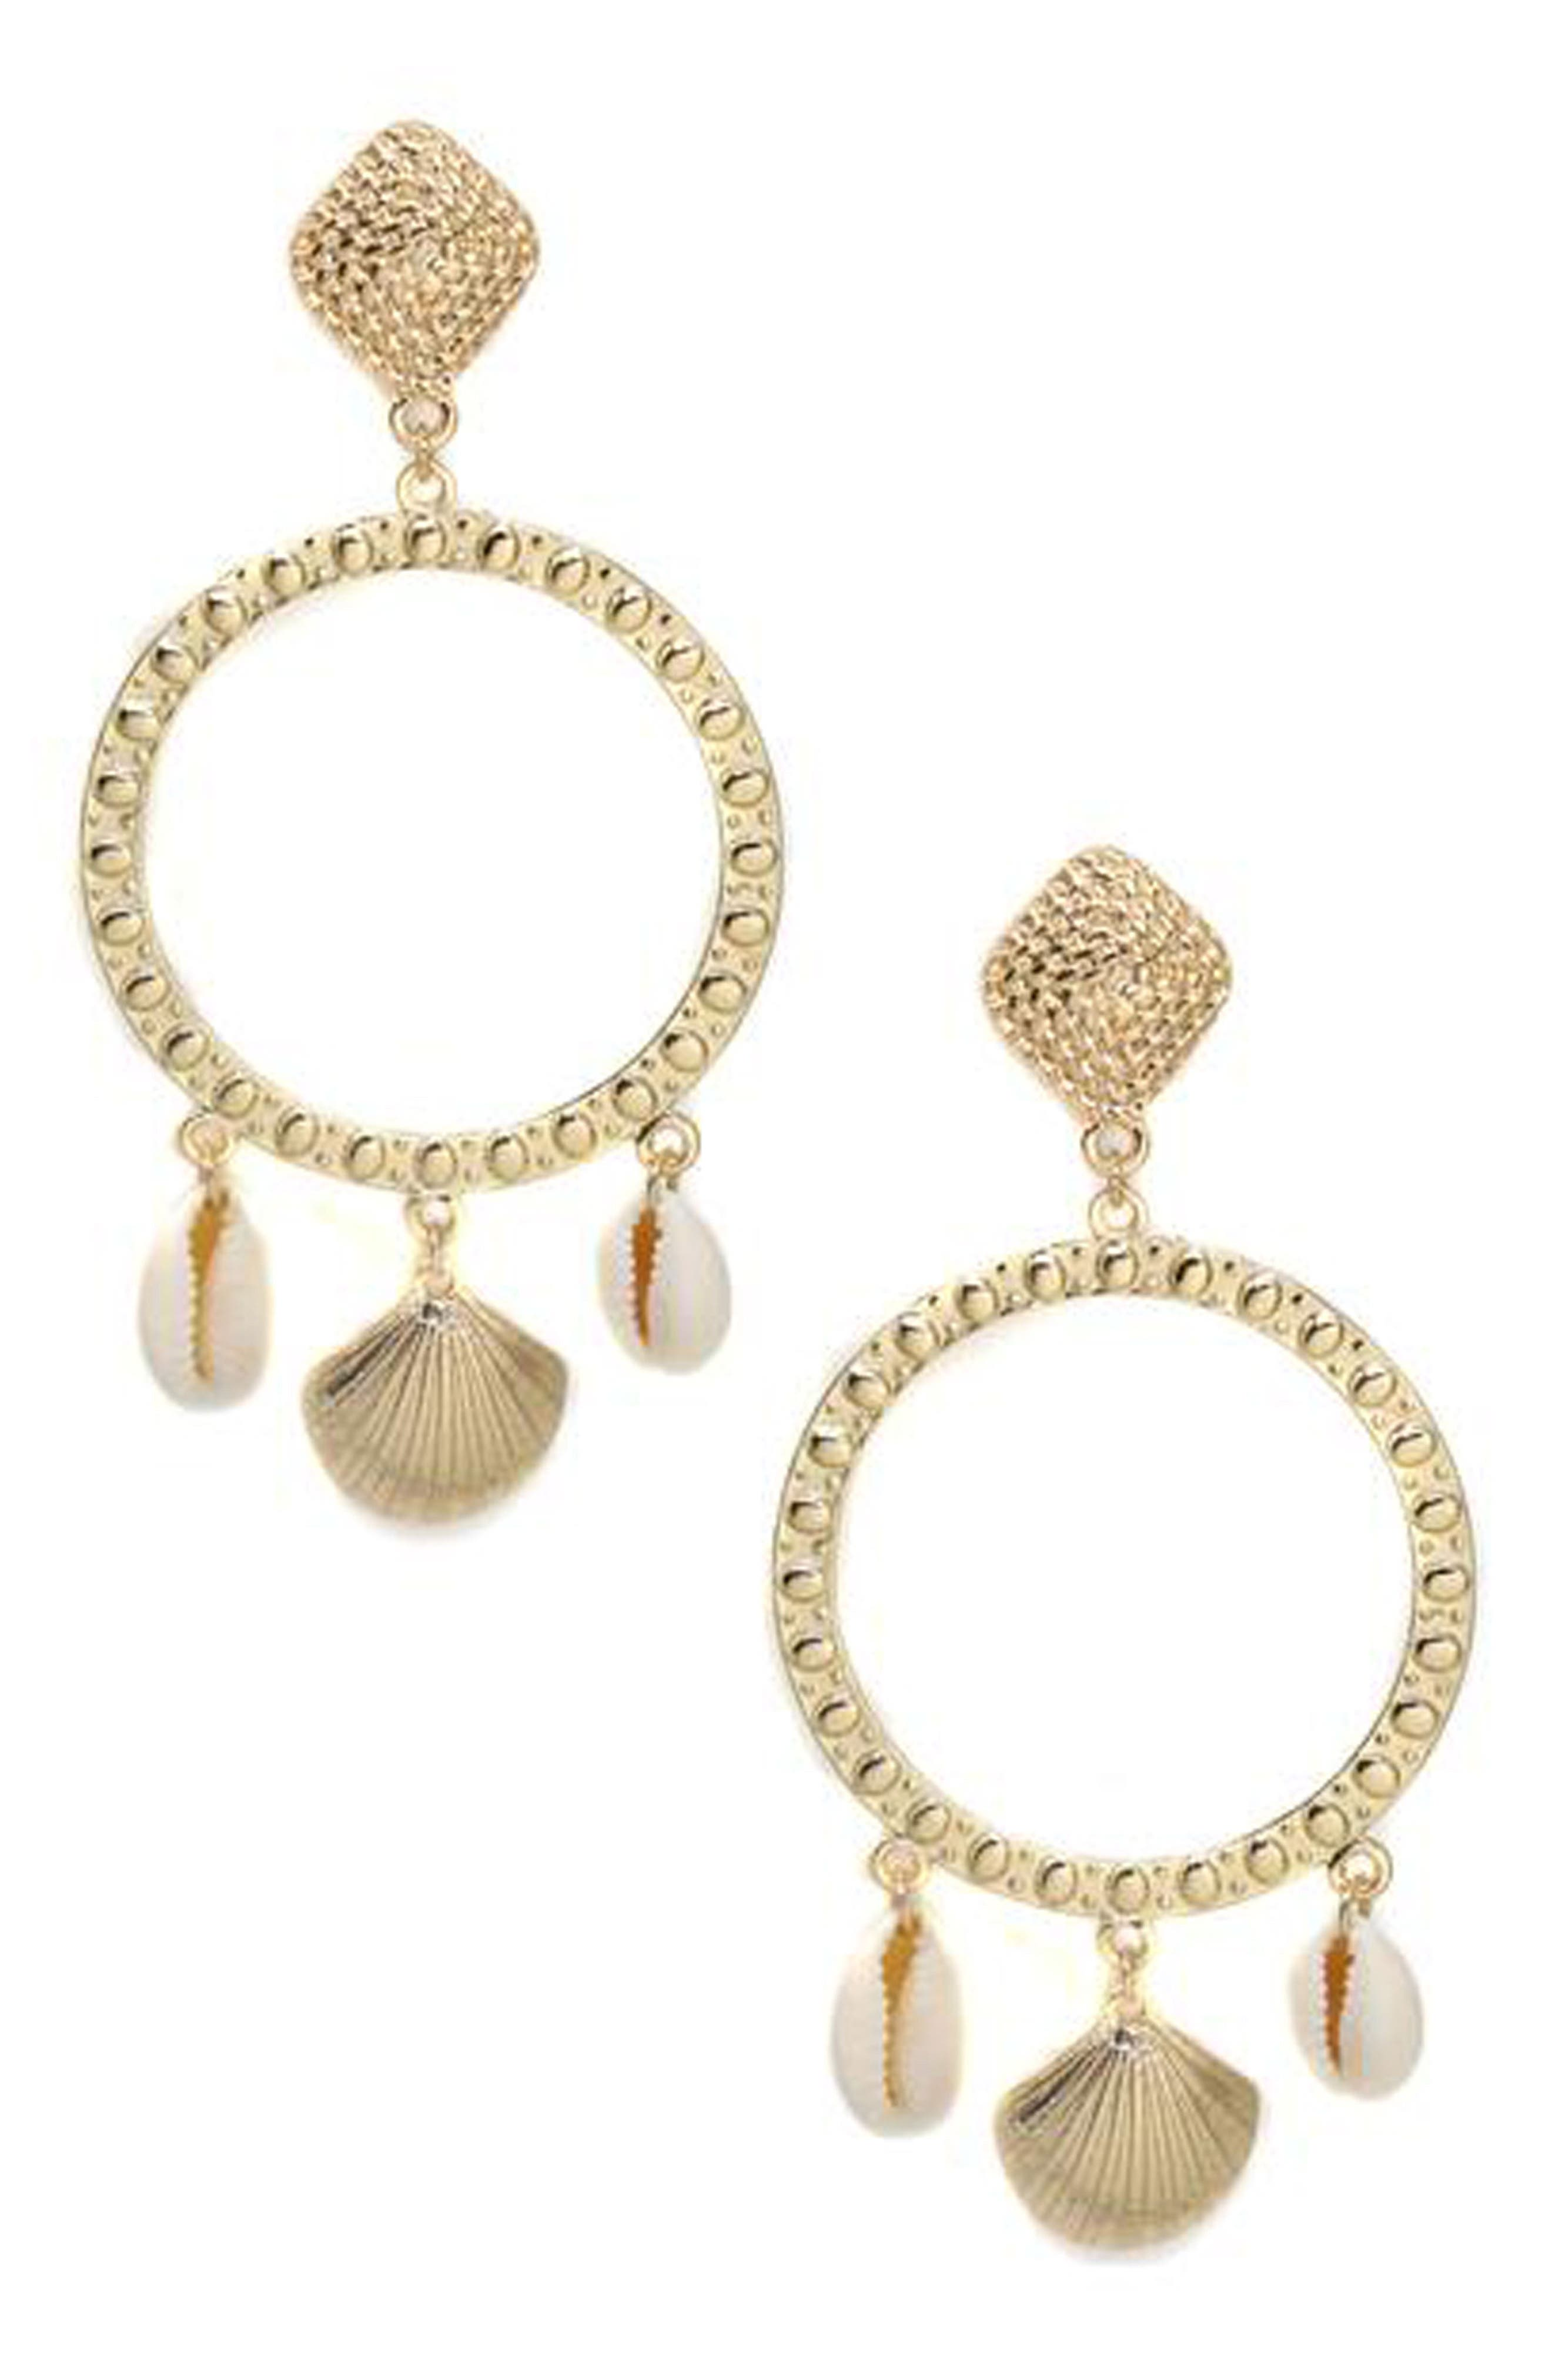 Shell Statement Earrings,                             Main thumbnail 1, color,                             Gold